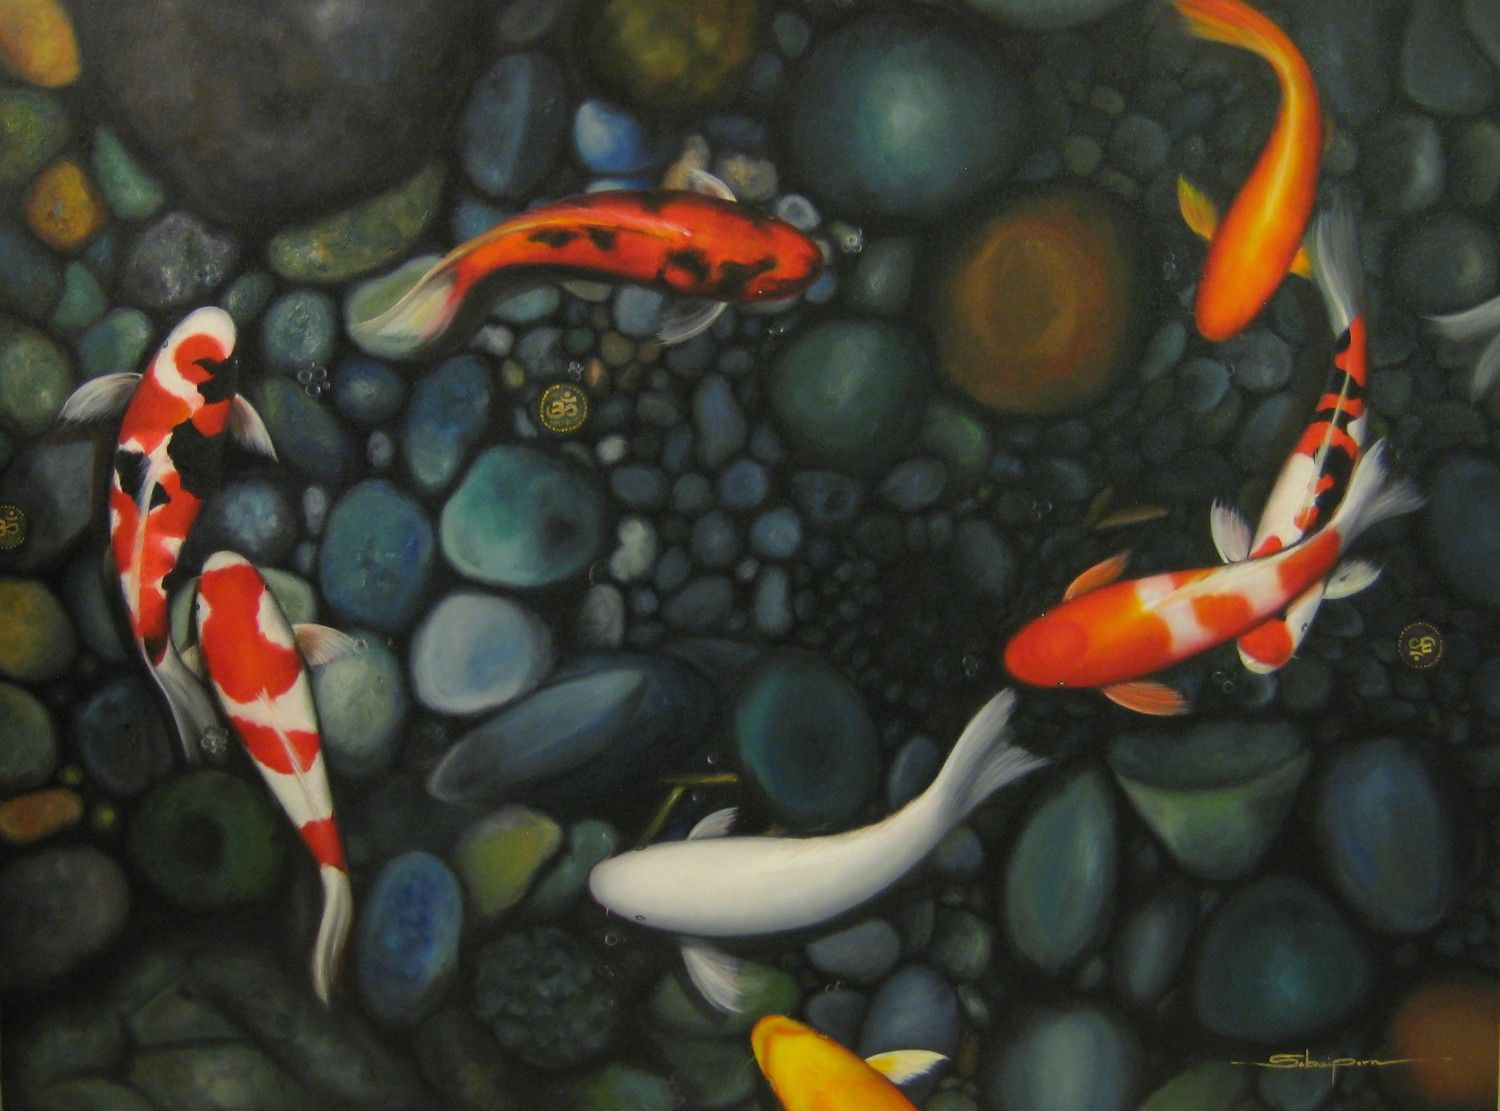 Koi fish pond drawing vbldqfueb painting ideas for Koi fish pond drawing